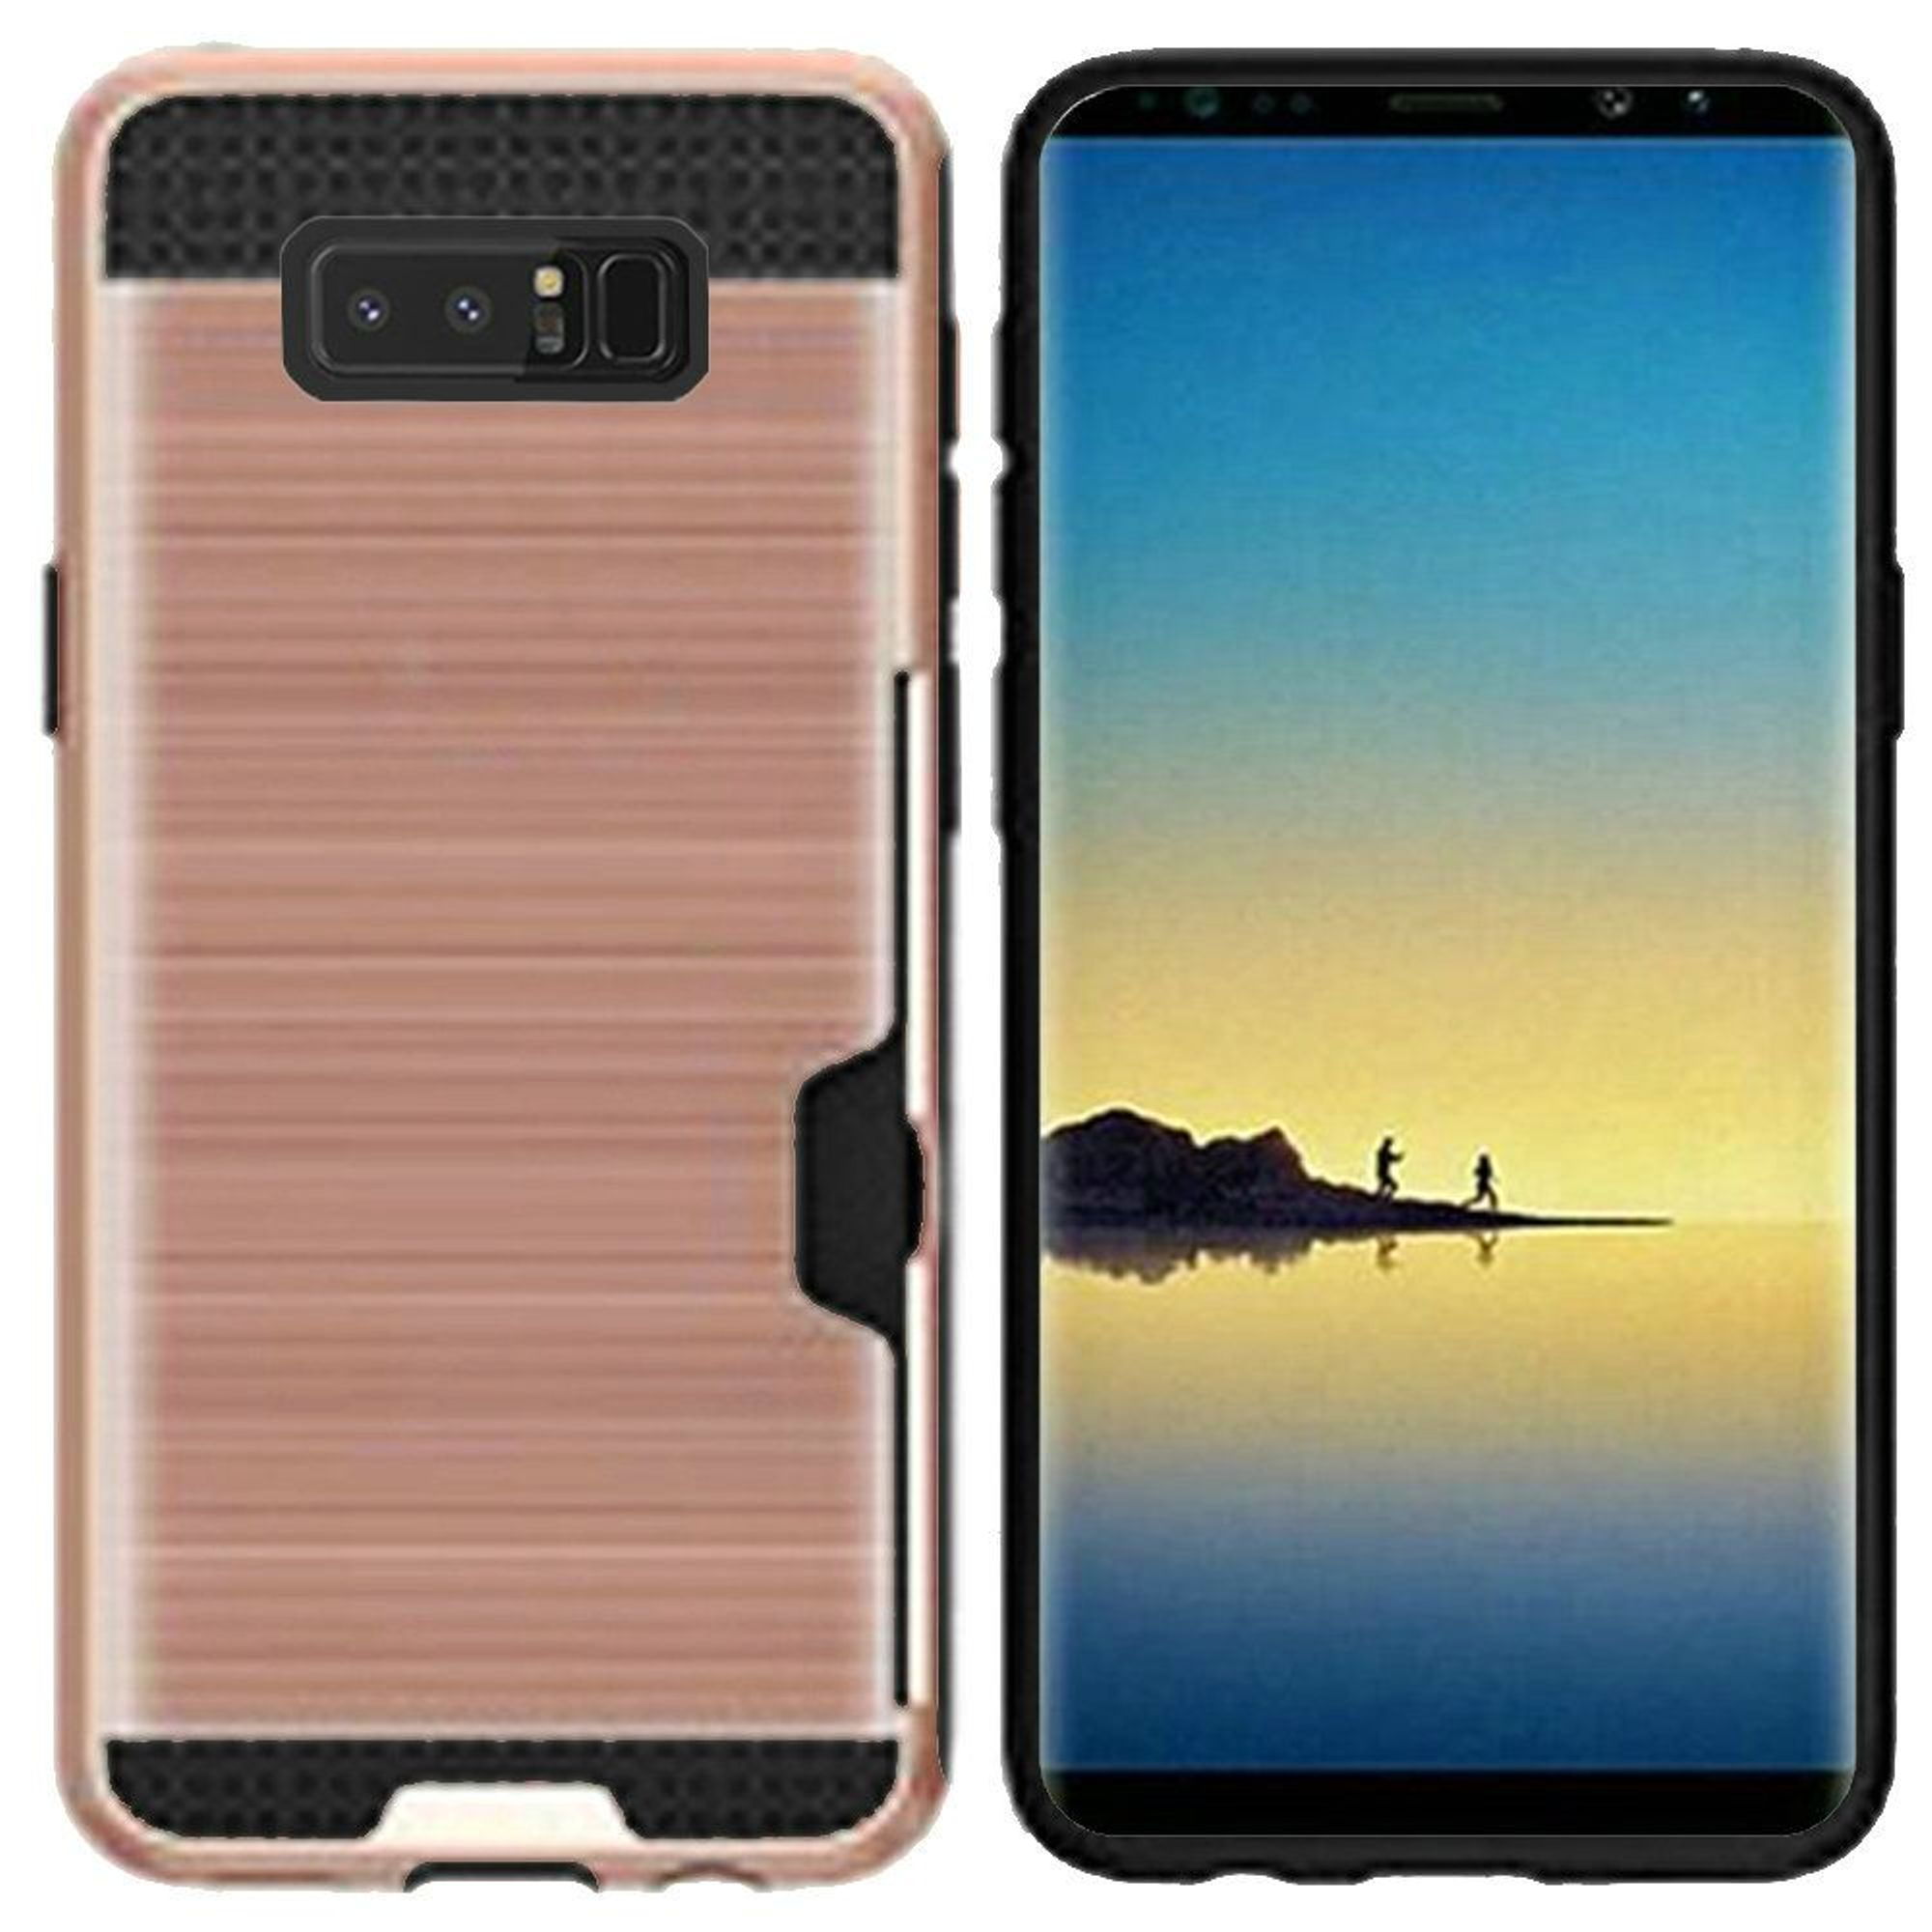 Samsung Galaxy Note 8 Case, by Insten Hard Plastic/Soft TPU Rubber with Card Holder Slot Case Cover For Samsung Galaxy Note 8, Black